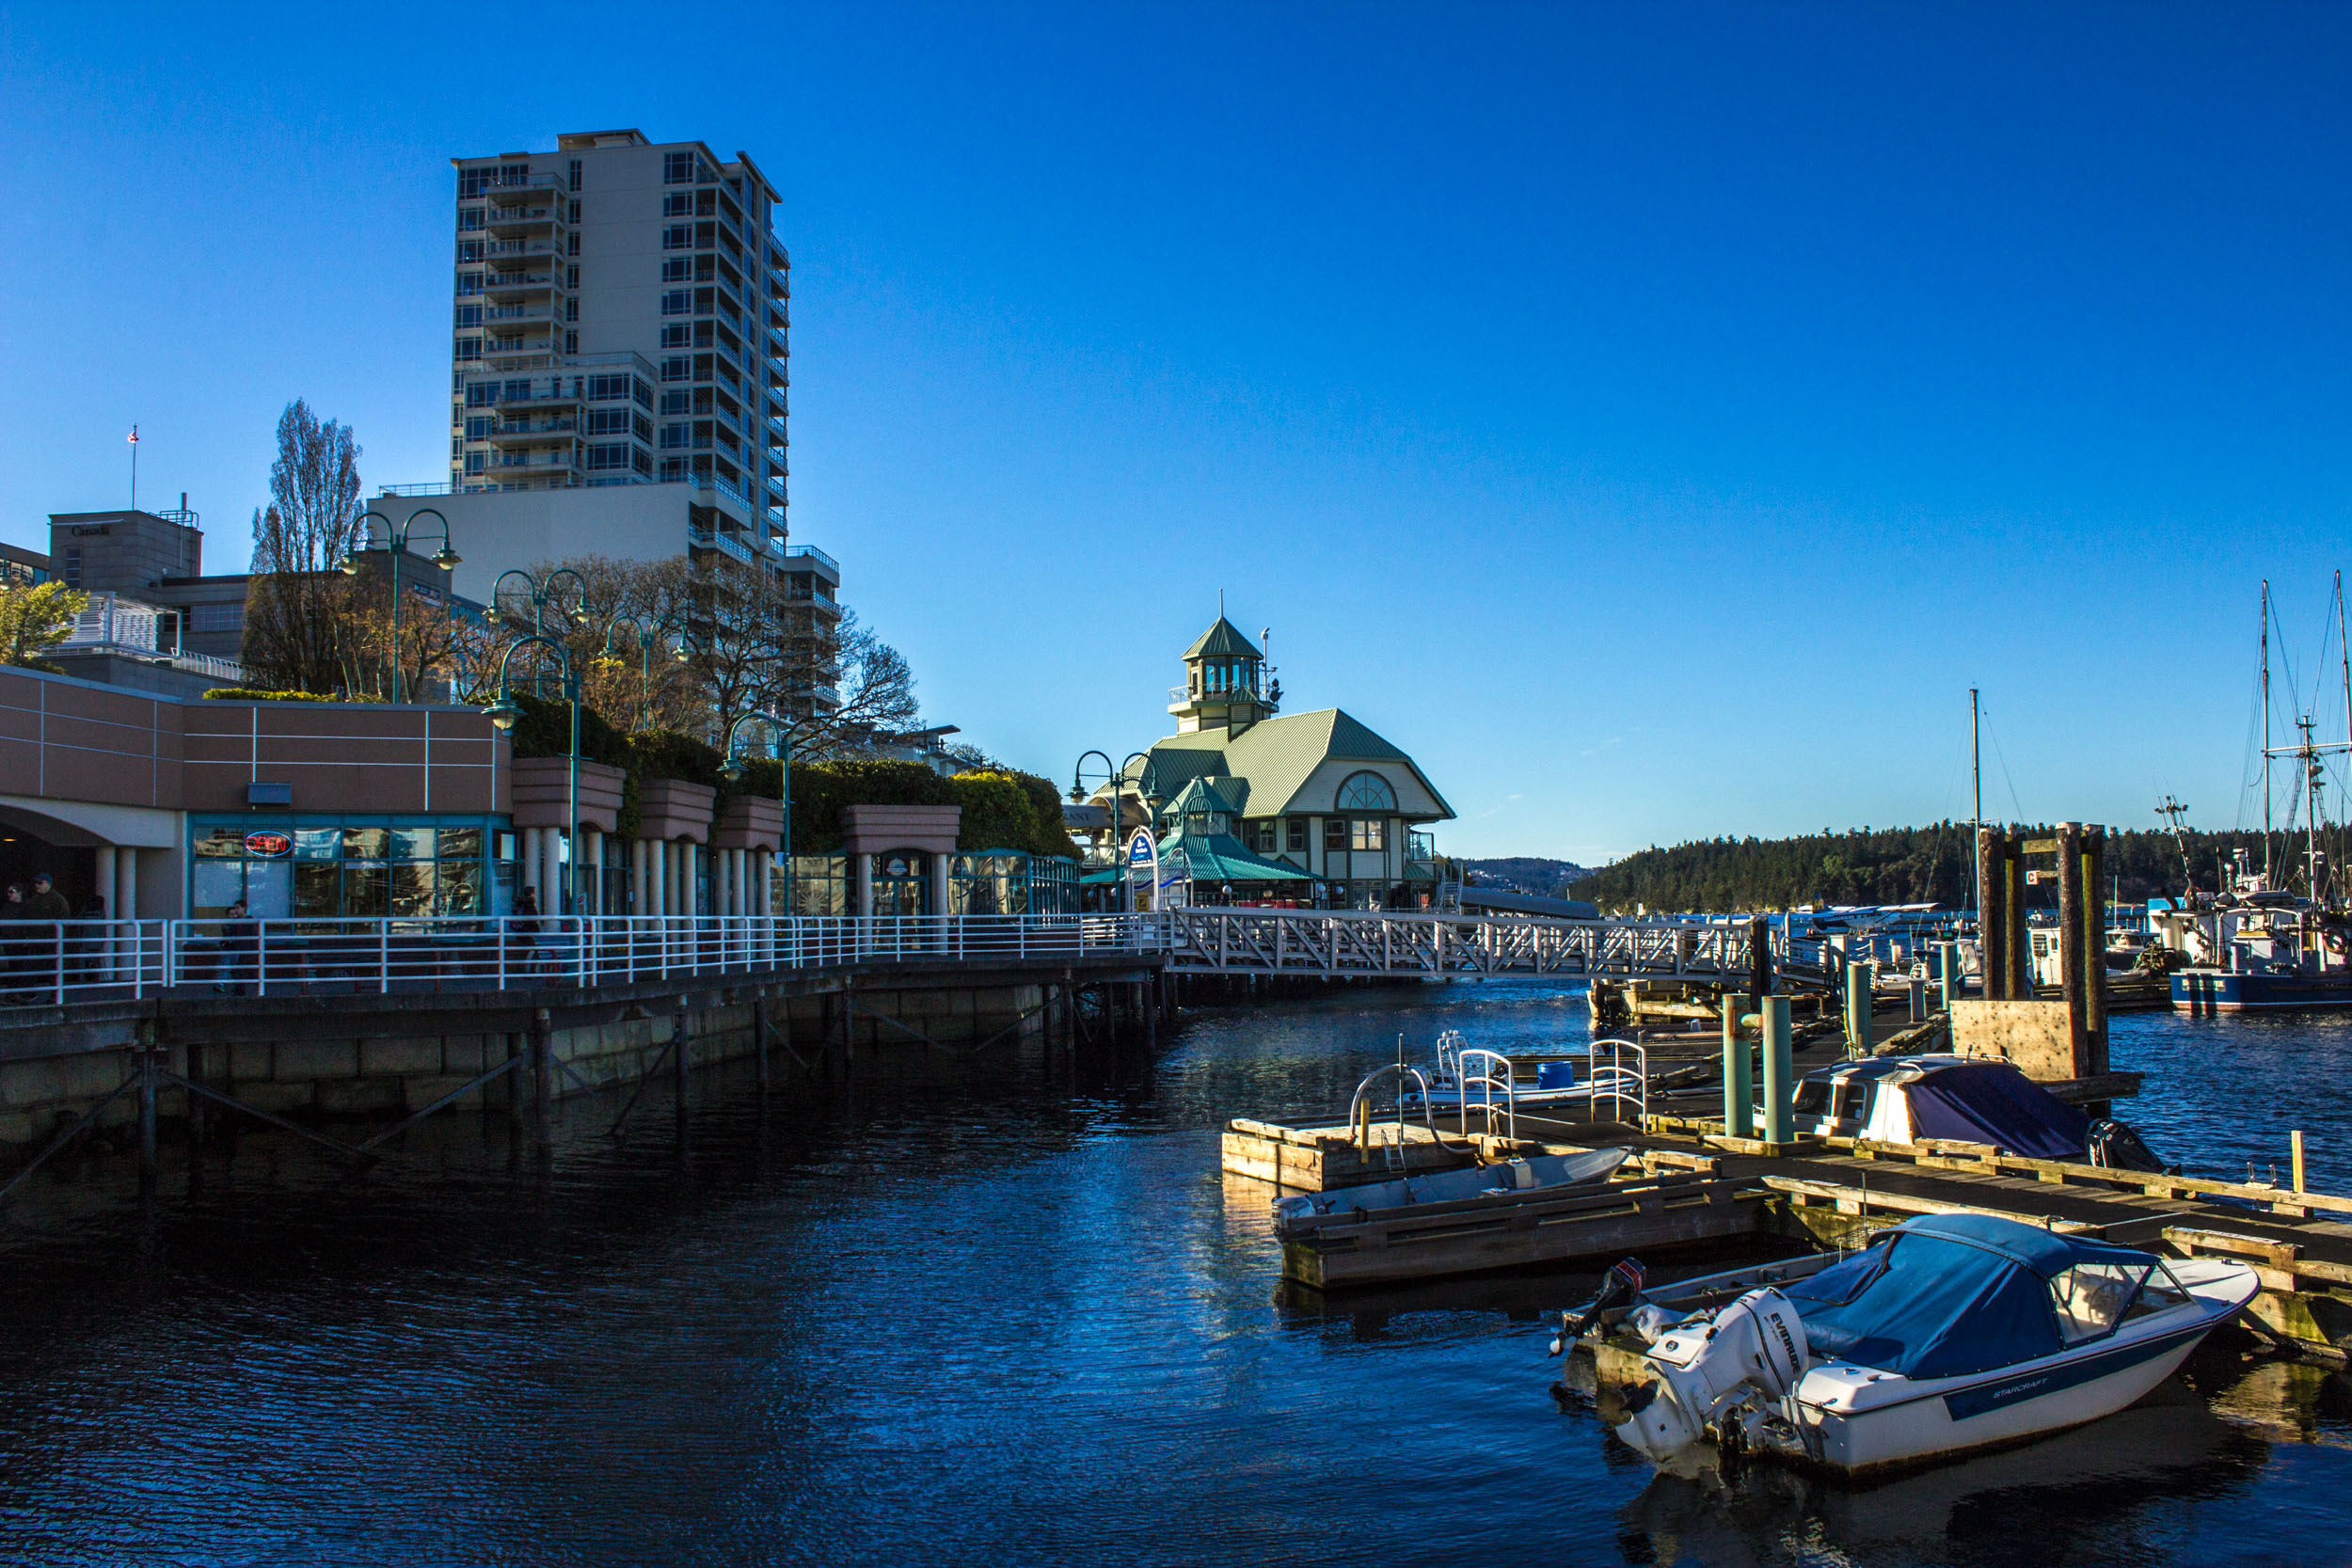 Nanaimo Waterfront     Copyright © Afro Boy Productions. All rights reserved.